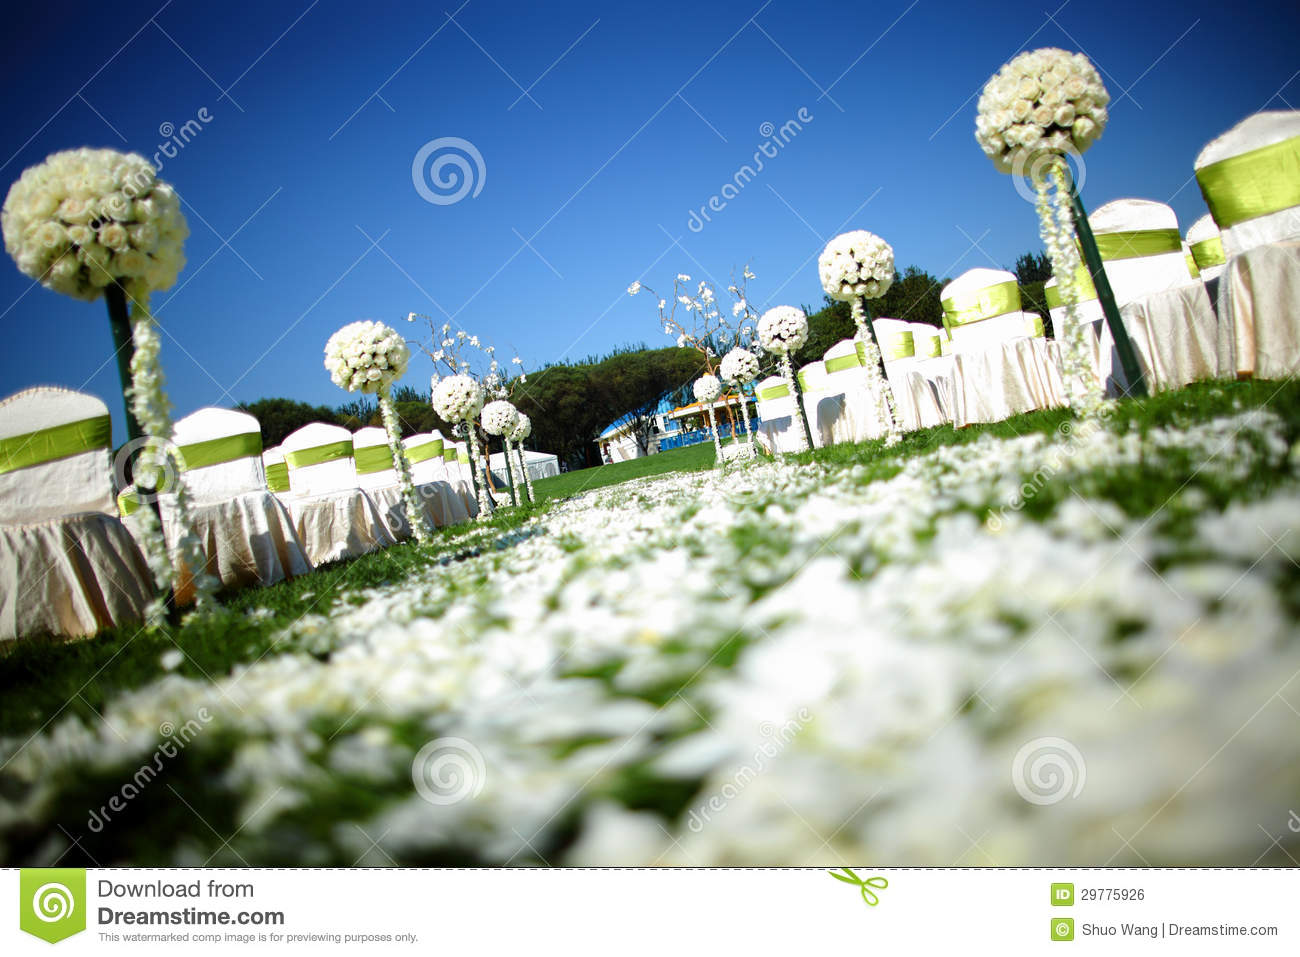 Outdoor Wedding Scene Royalty Free Stock Image - Image: 29775926